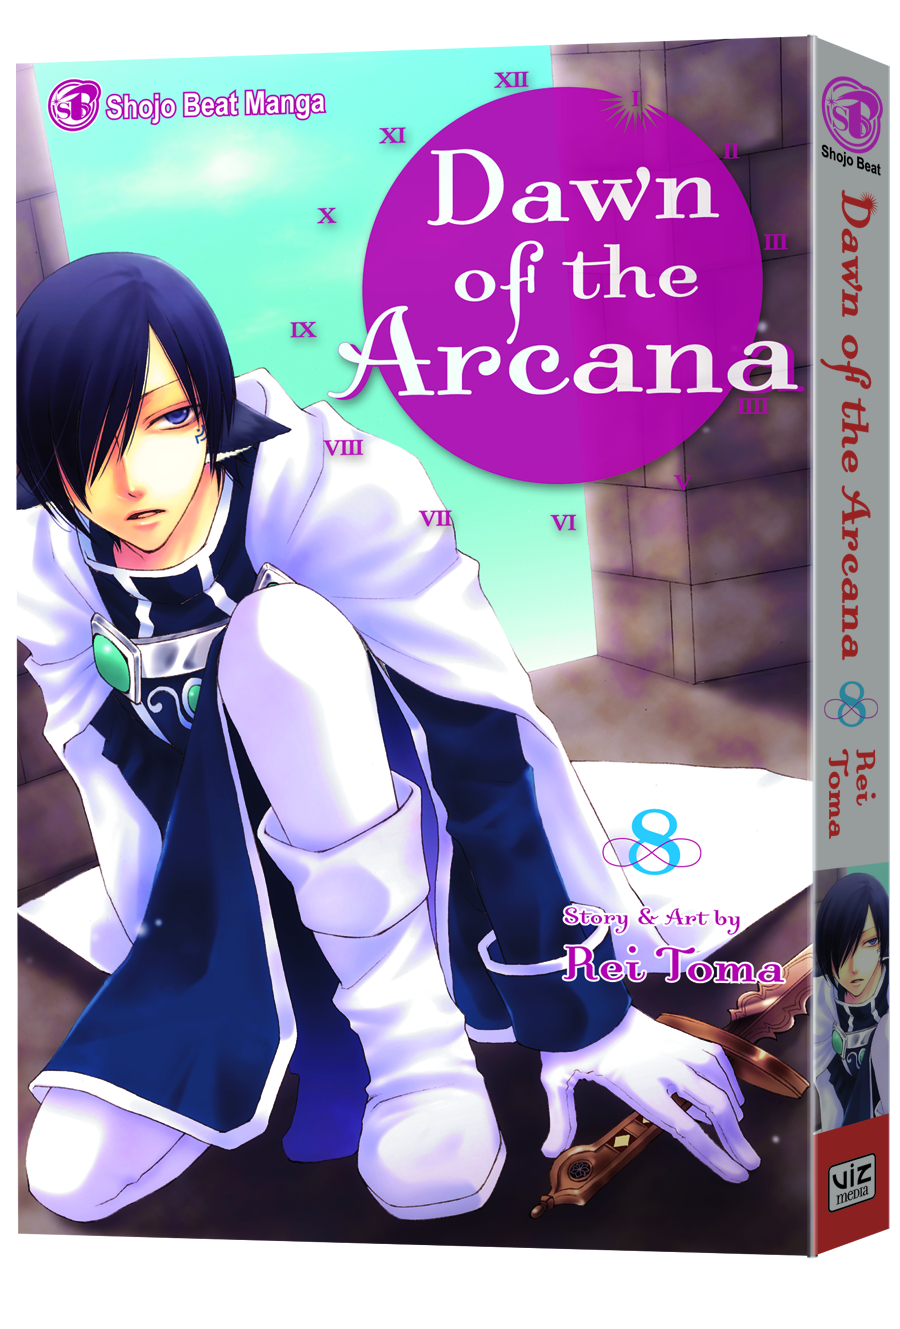 DAWN OF THE ARCANA GN VOL 08